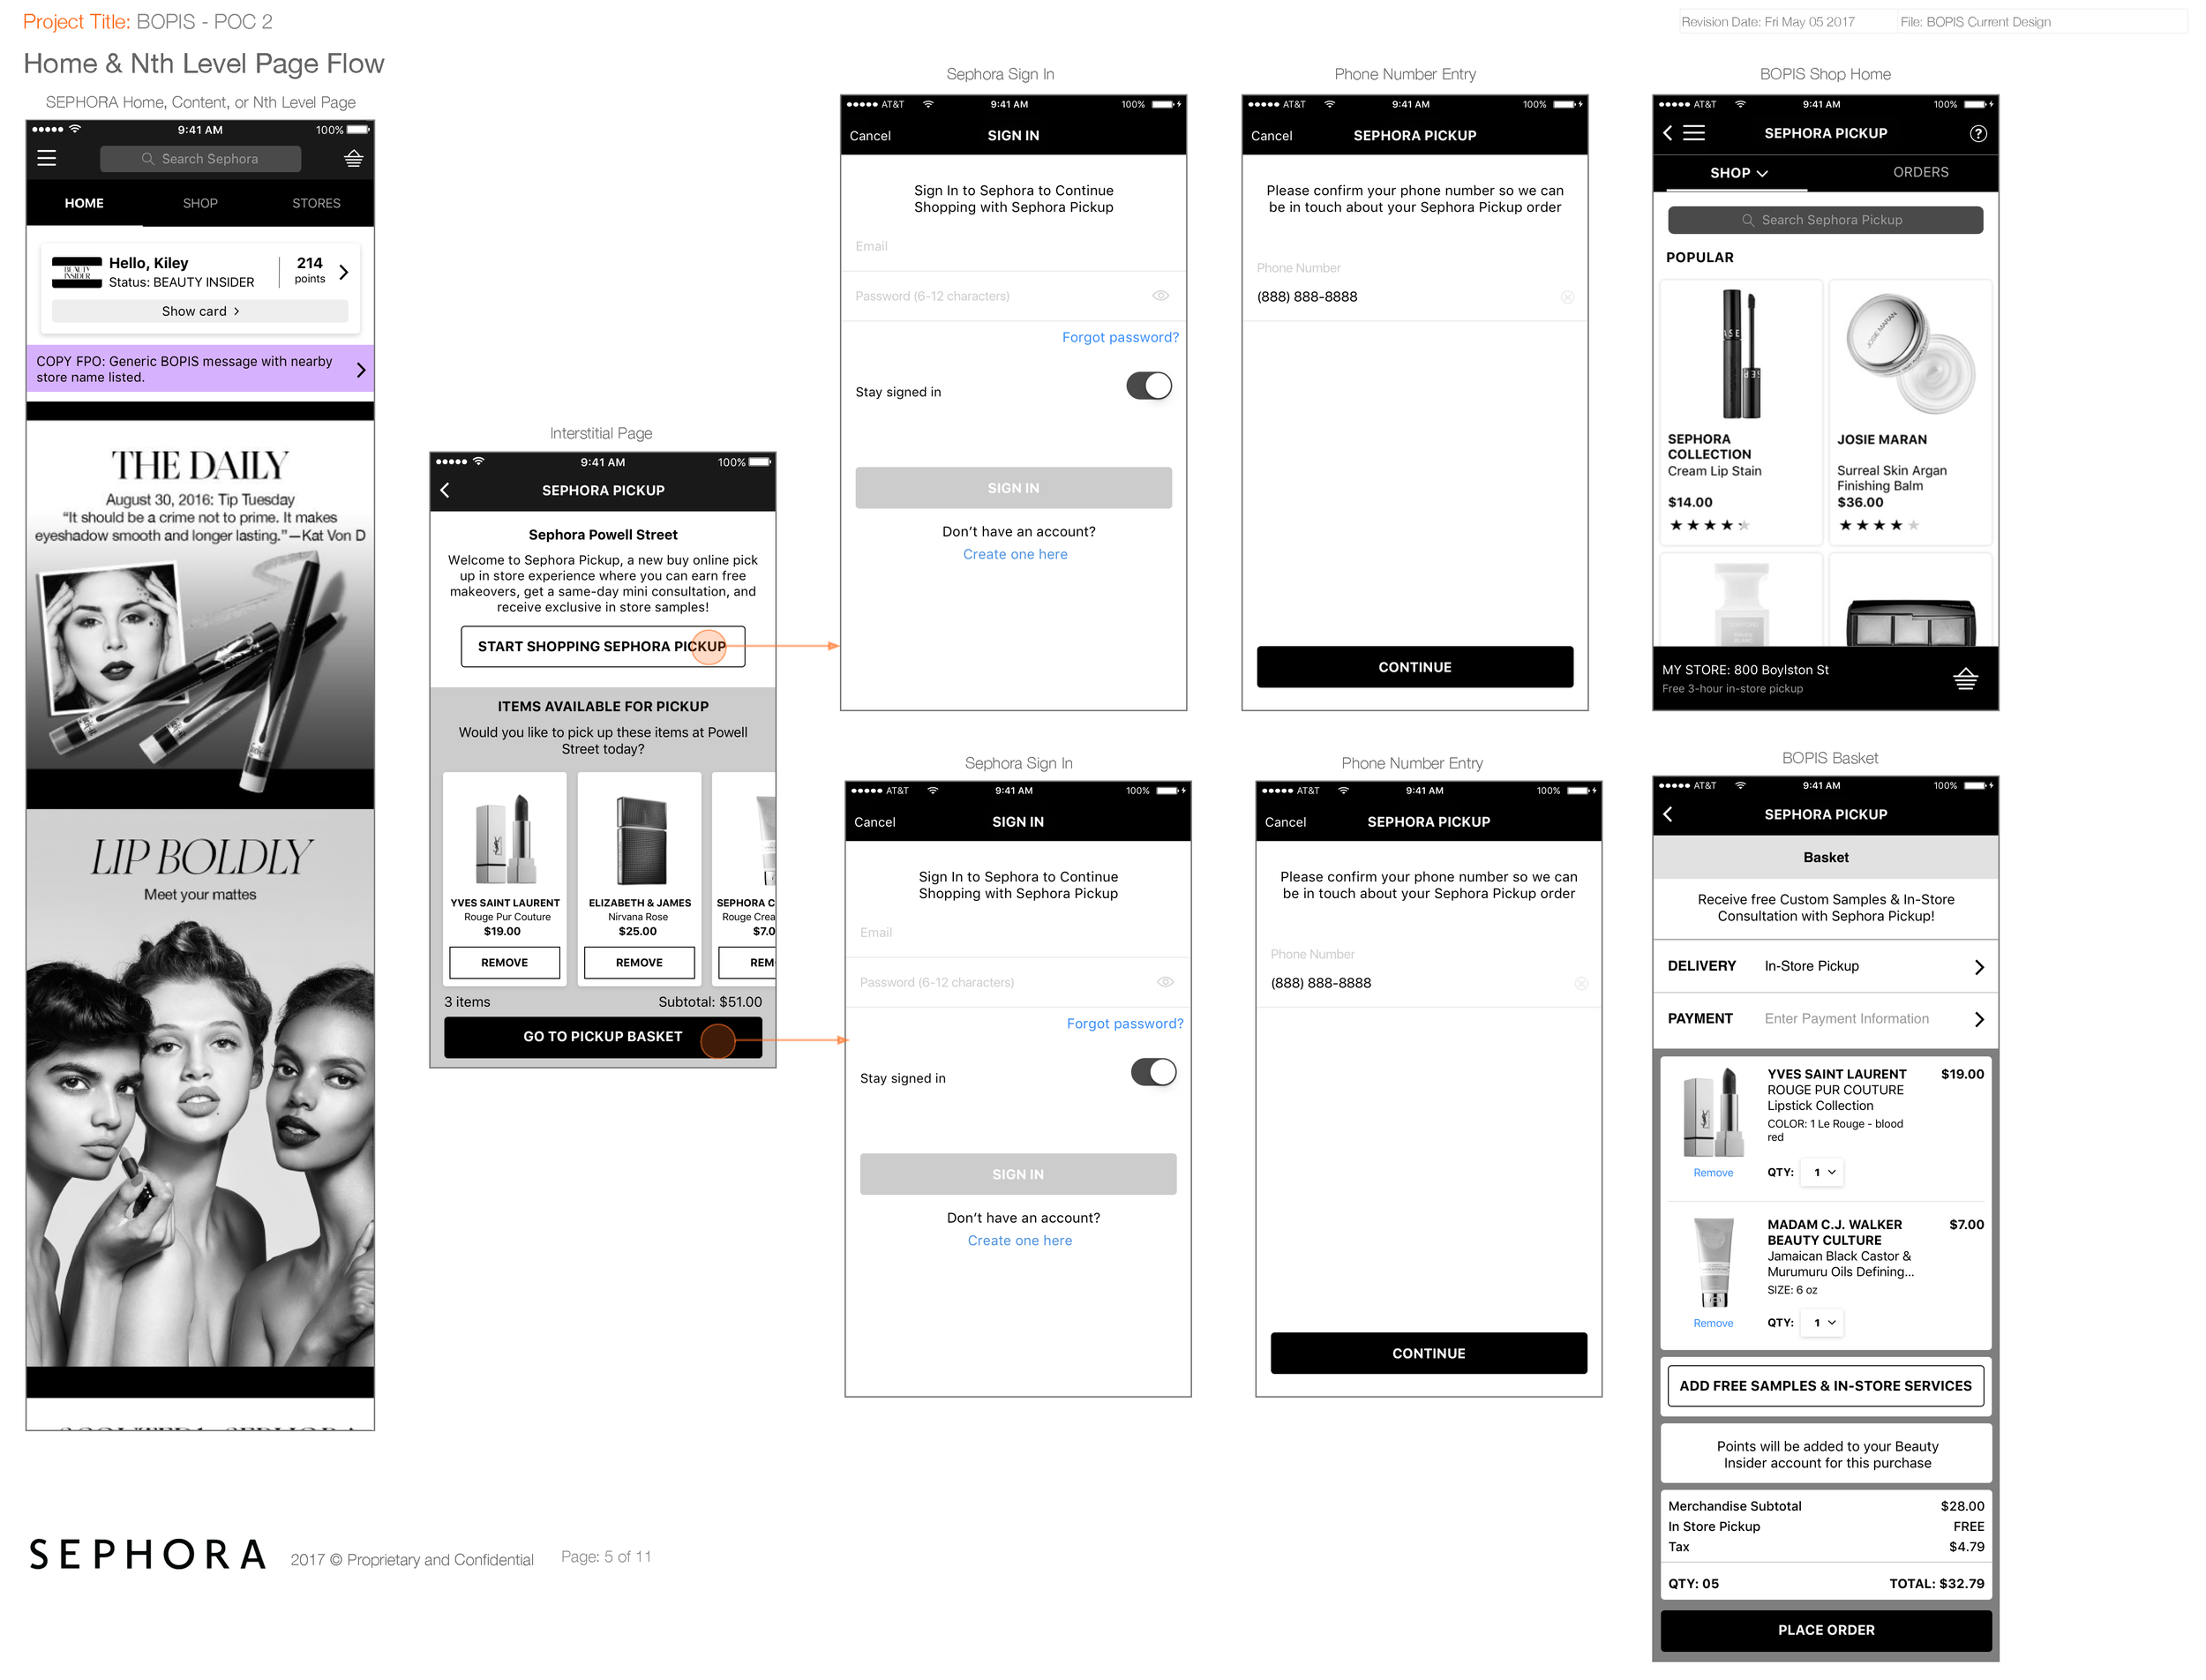 BOPIS Current Design 5.5.17_Page_05.png